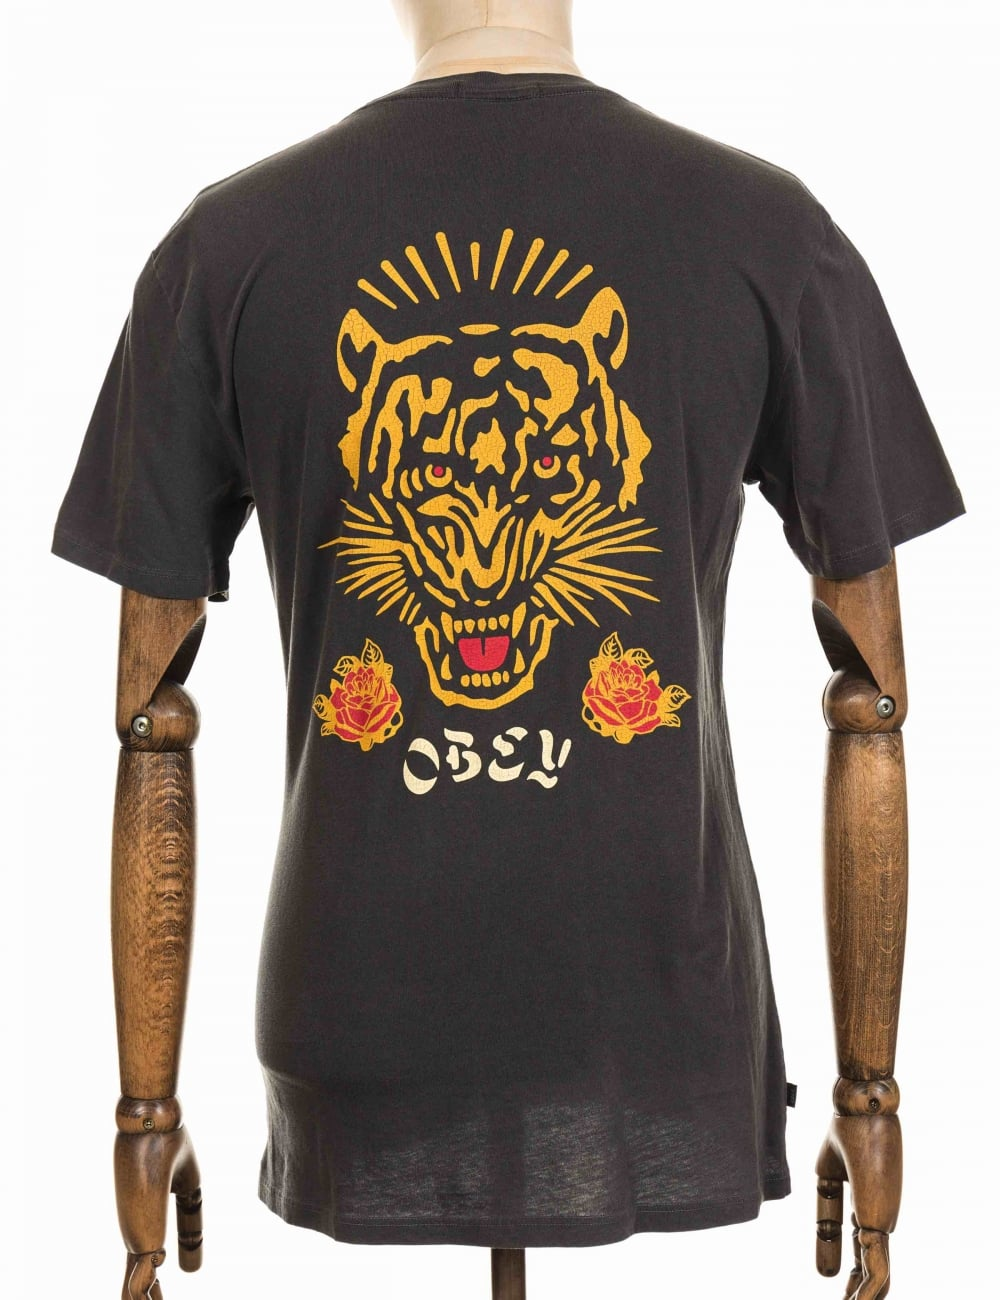 e3bd9bc4bde0 Obey Clothing Kiss Me Deadly Tiger T-shirt - Dusty Black - Clothing ...